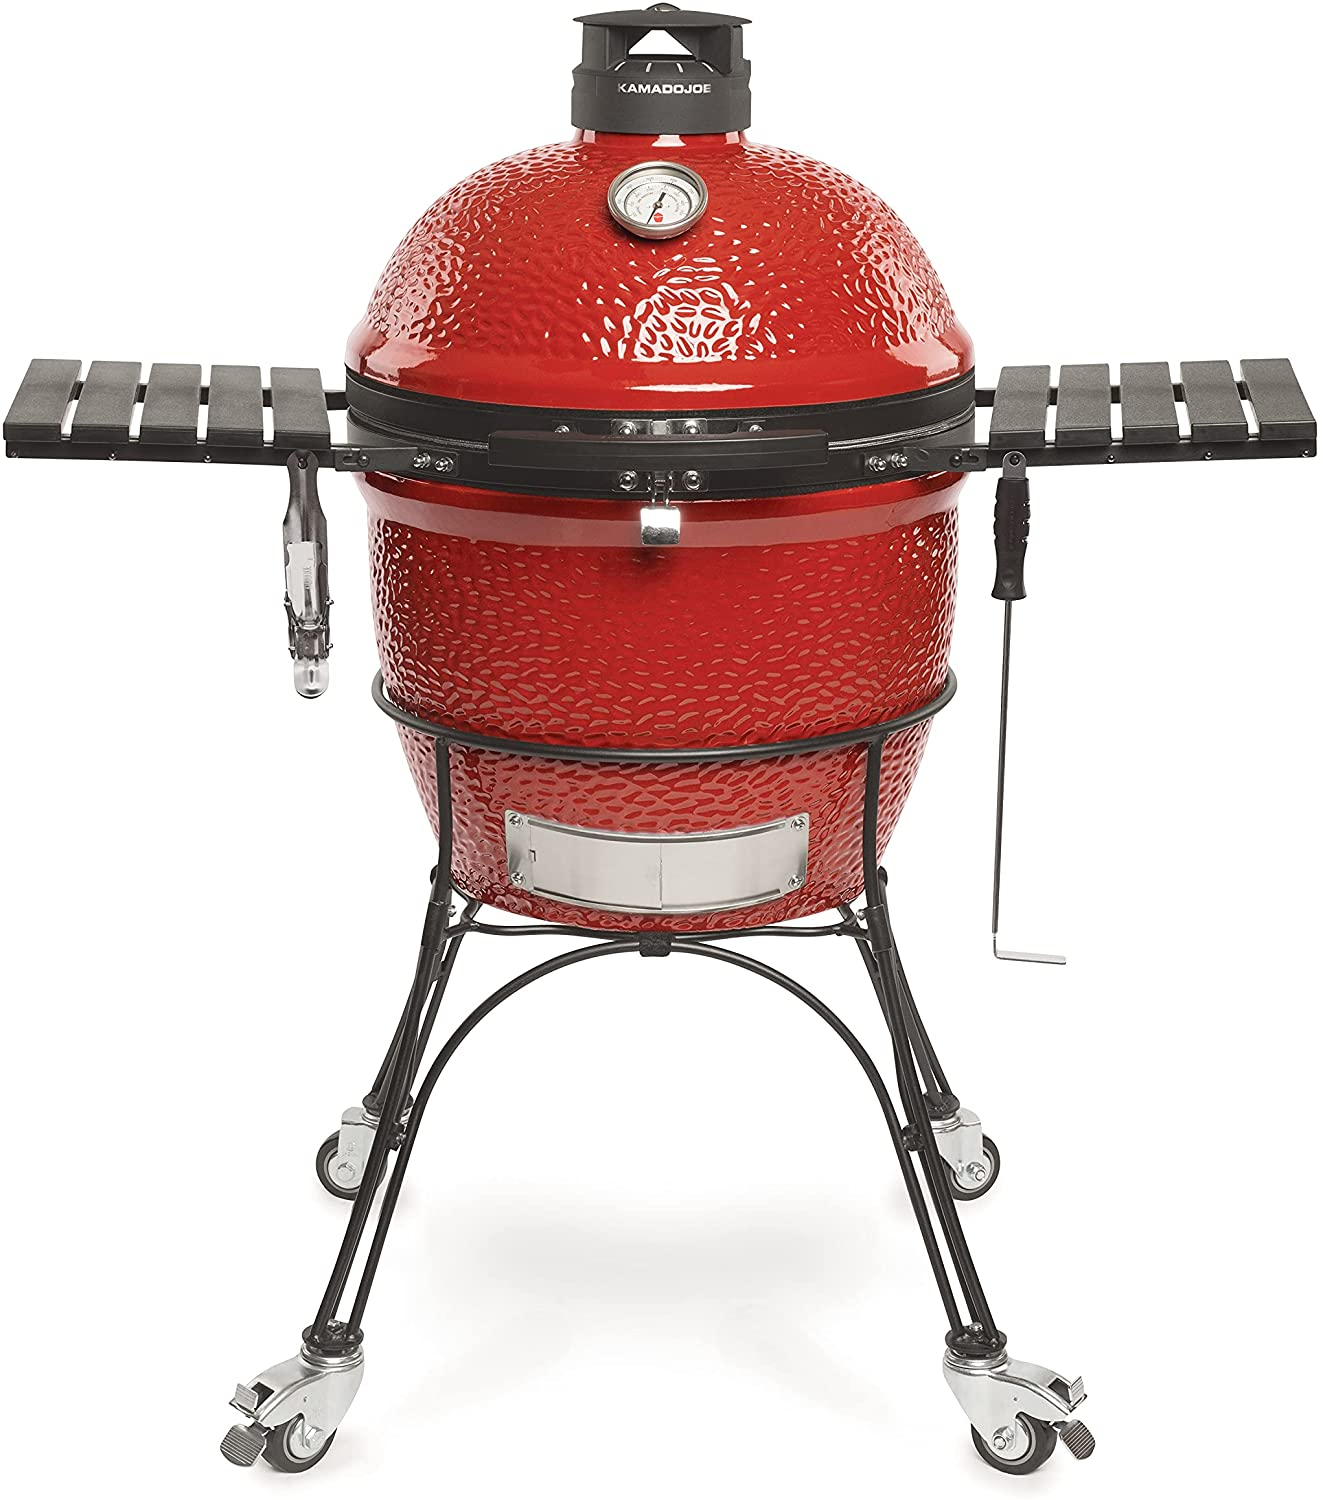 Best charcoal grill for smoking AND grilling- Kamado Joe Classic II